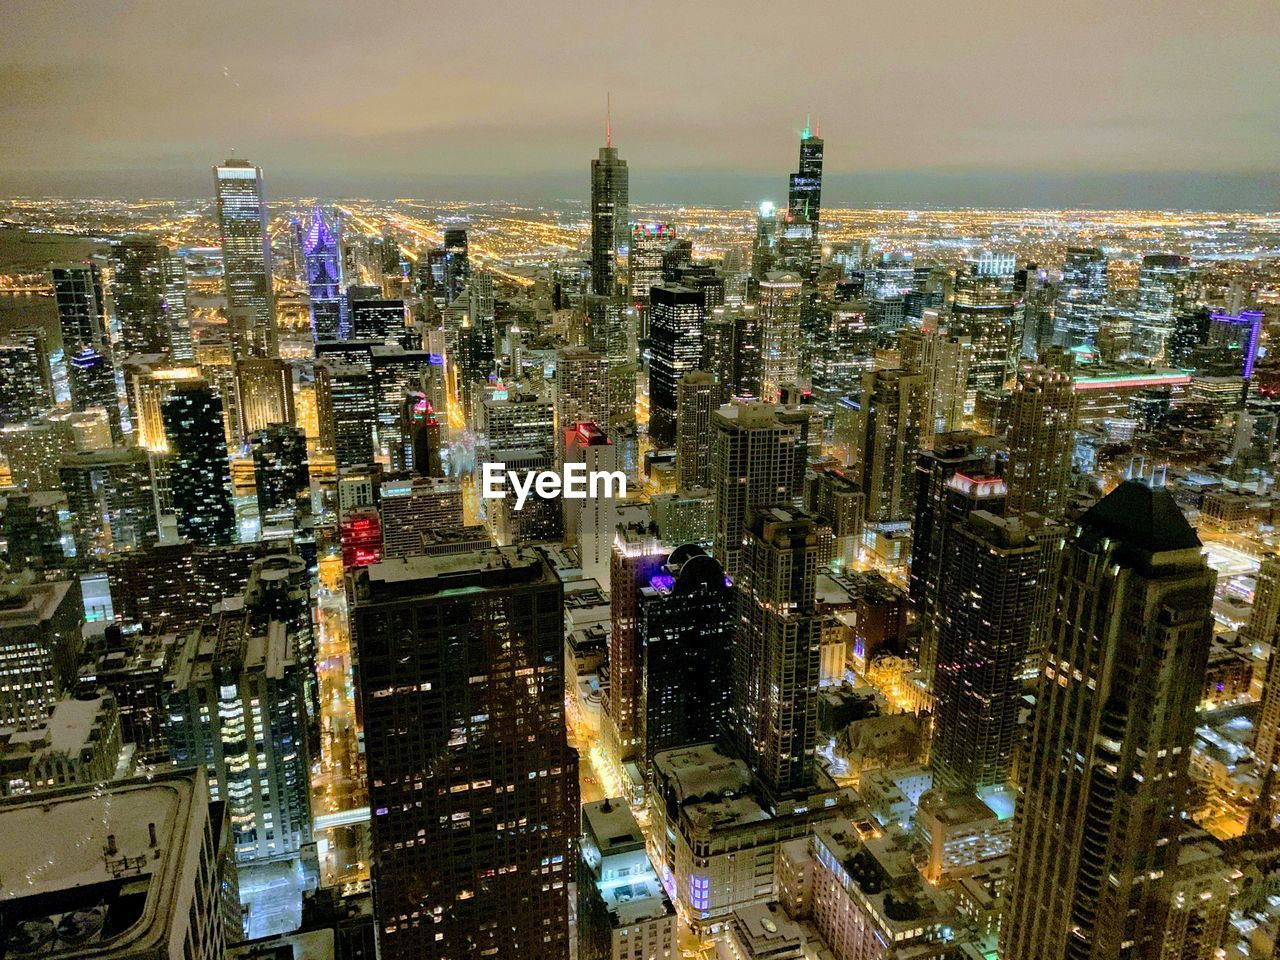 Chicago Skyline: Panorama from the 95th